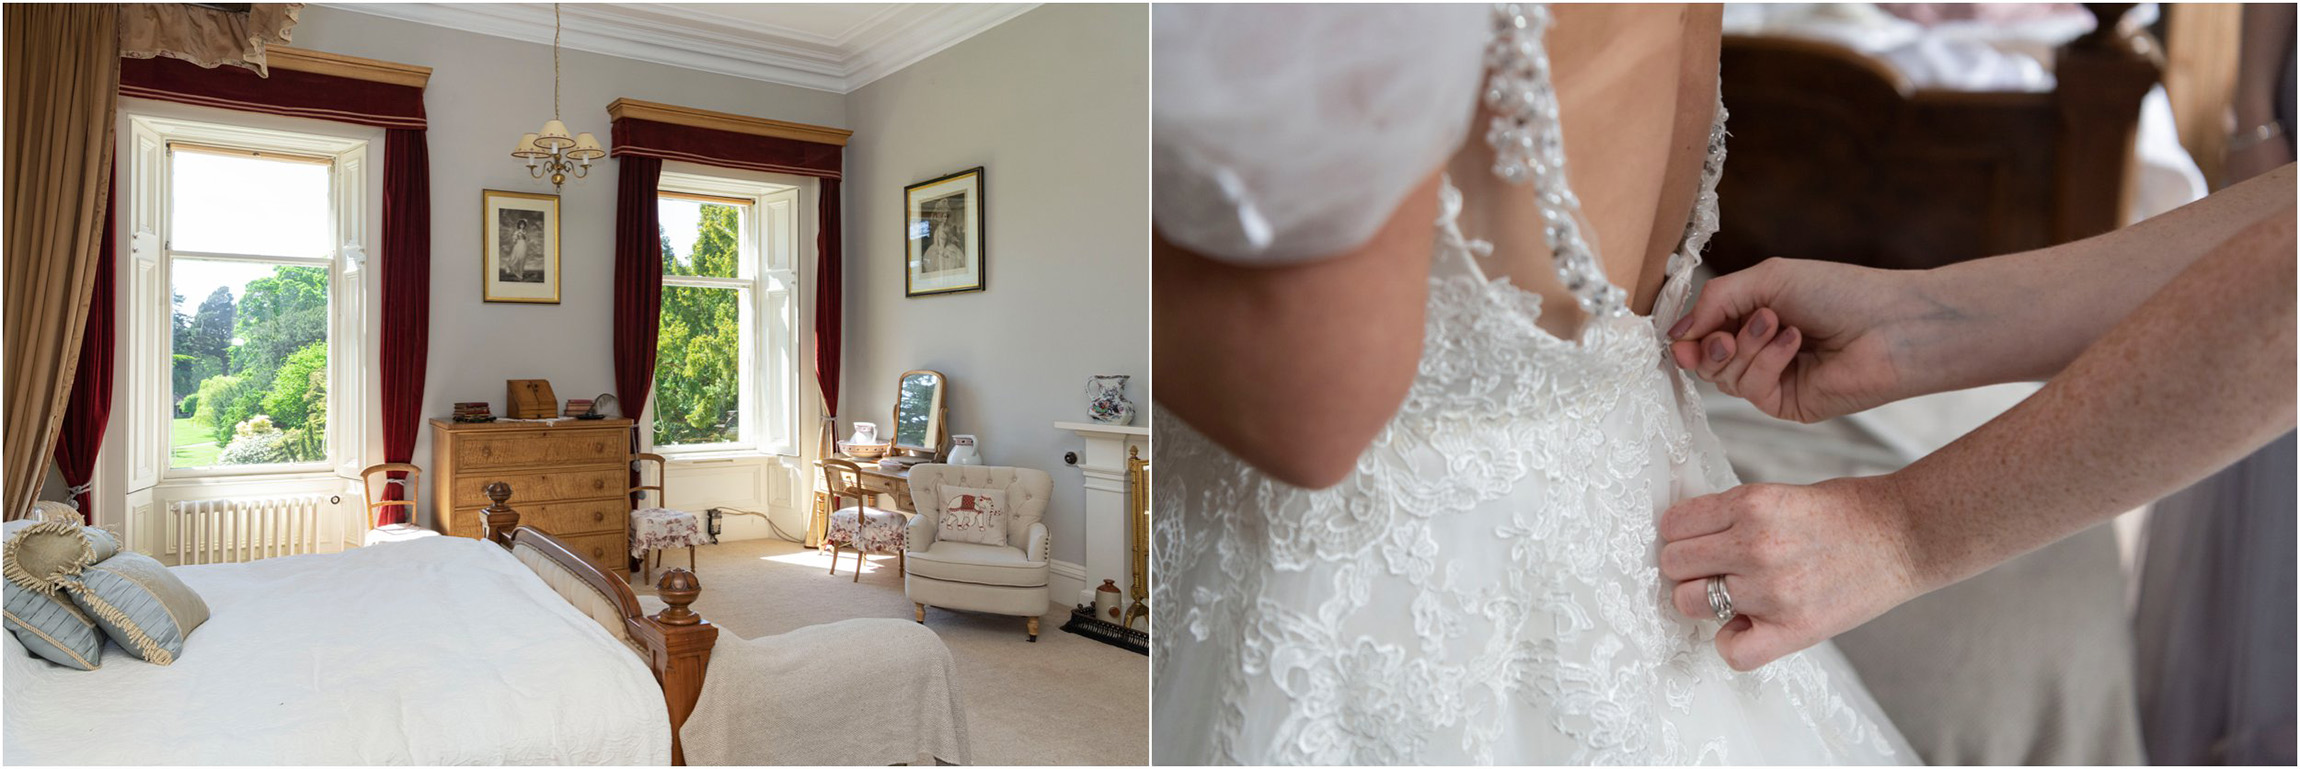 ©FianderFoto_Scotland Wedding Photographer_Errol Park Estate_Janine_Karl_039.jpg